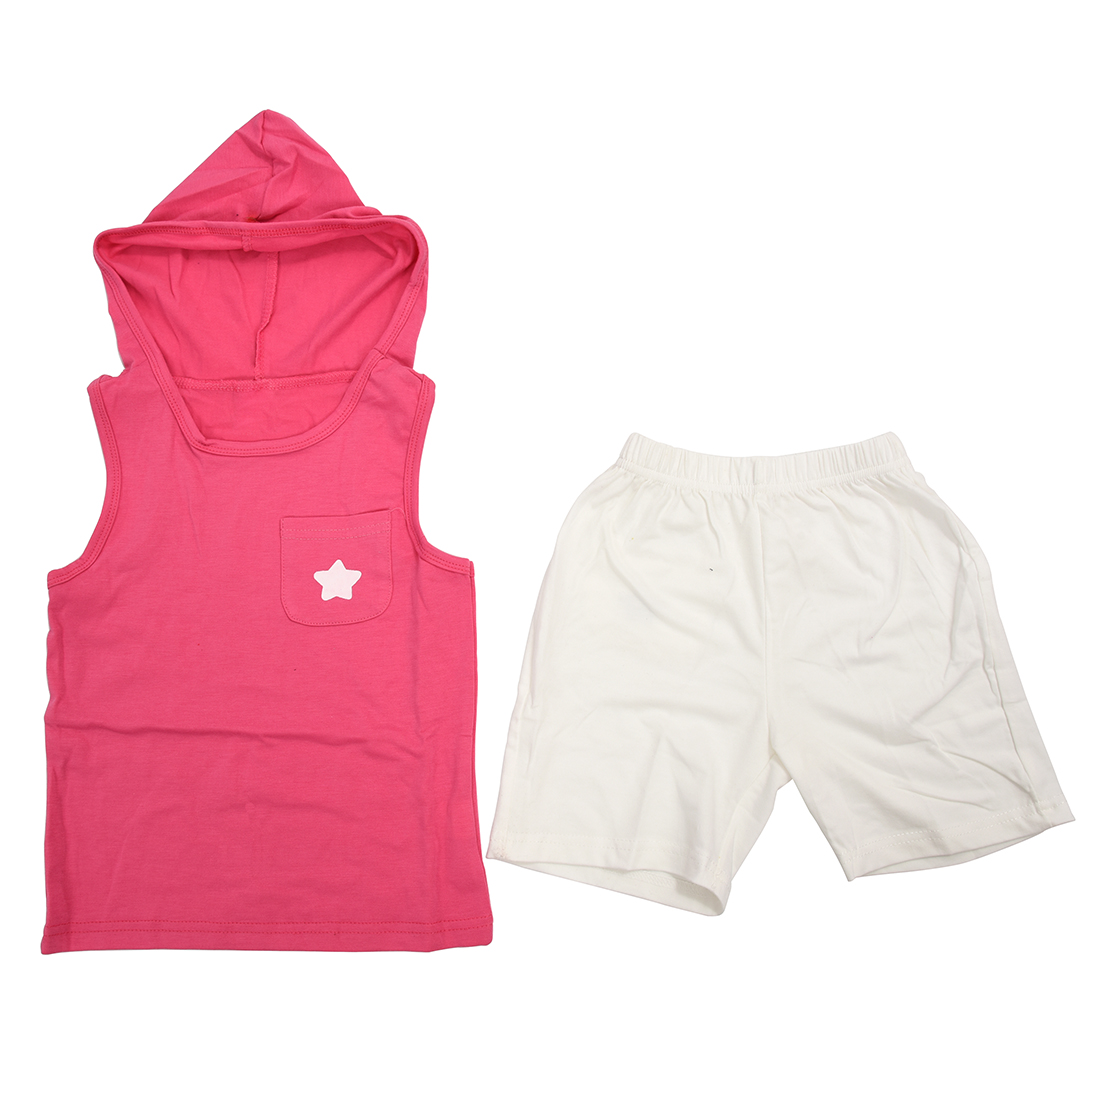 MACH boy girl children clothing cotton summer cloth baby kids clothing suit set vest + short hooded sports sets star pink 110cm baby boy girl clothing set high quality cotton kids children clothes pullover hooded suit for boy girl long sleeve spring sets